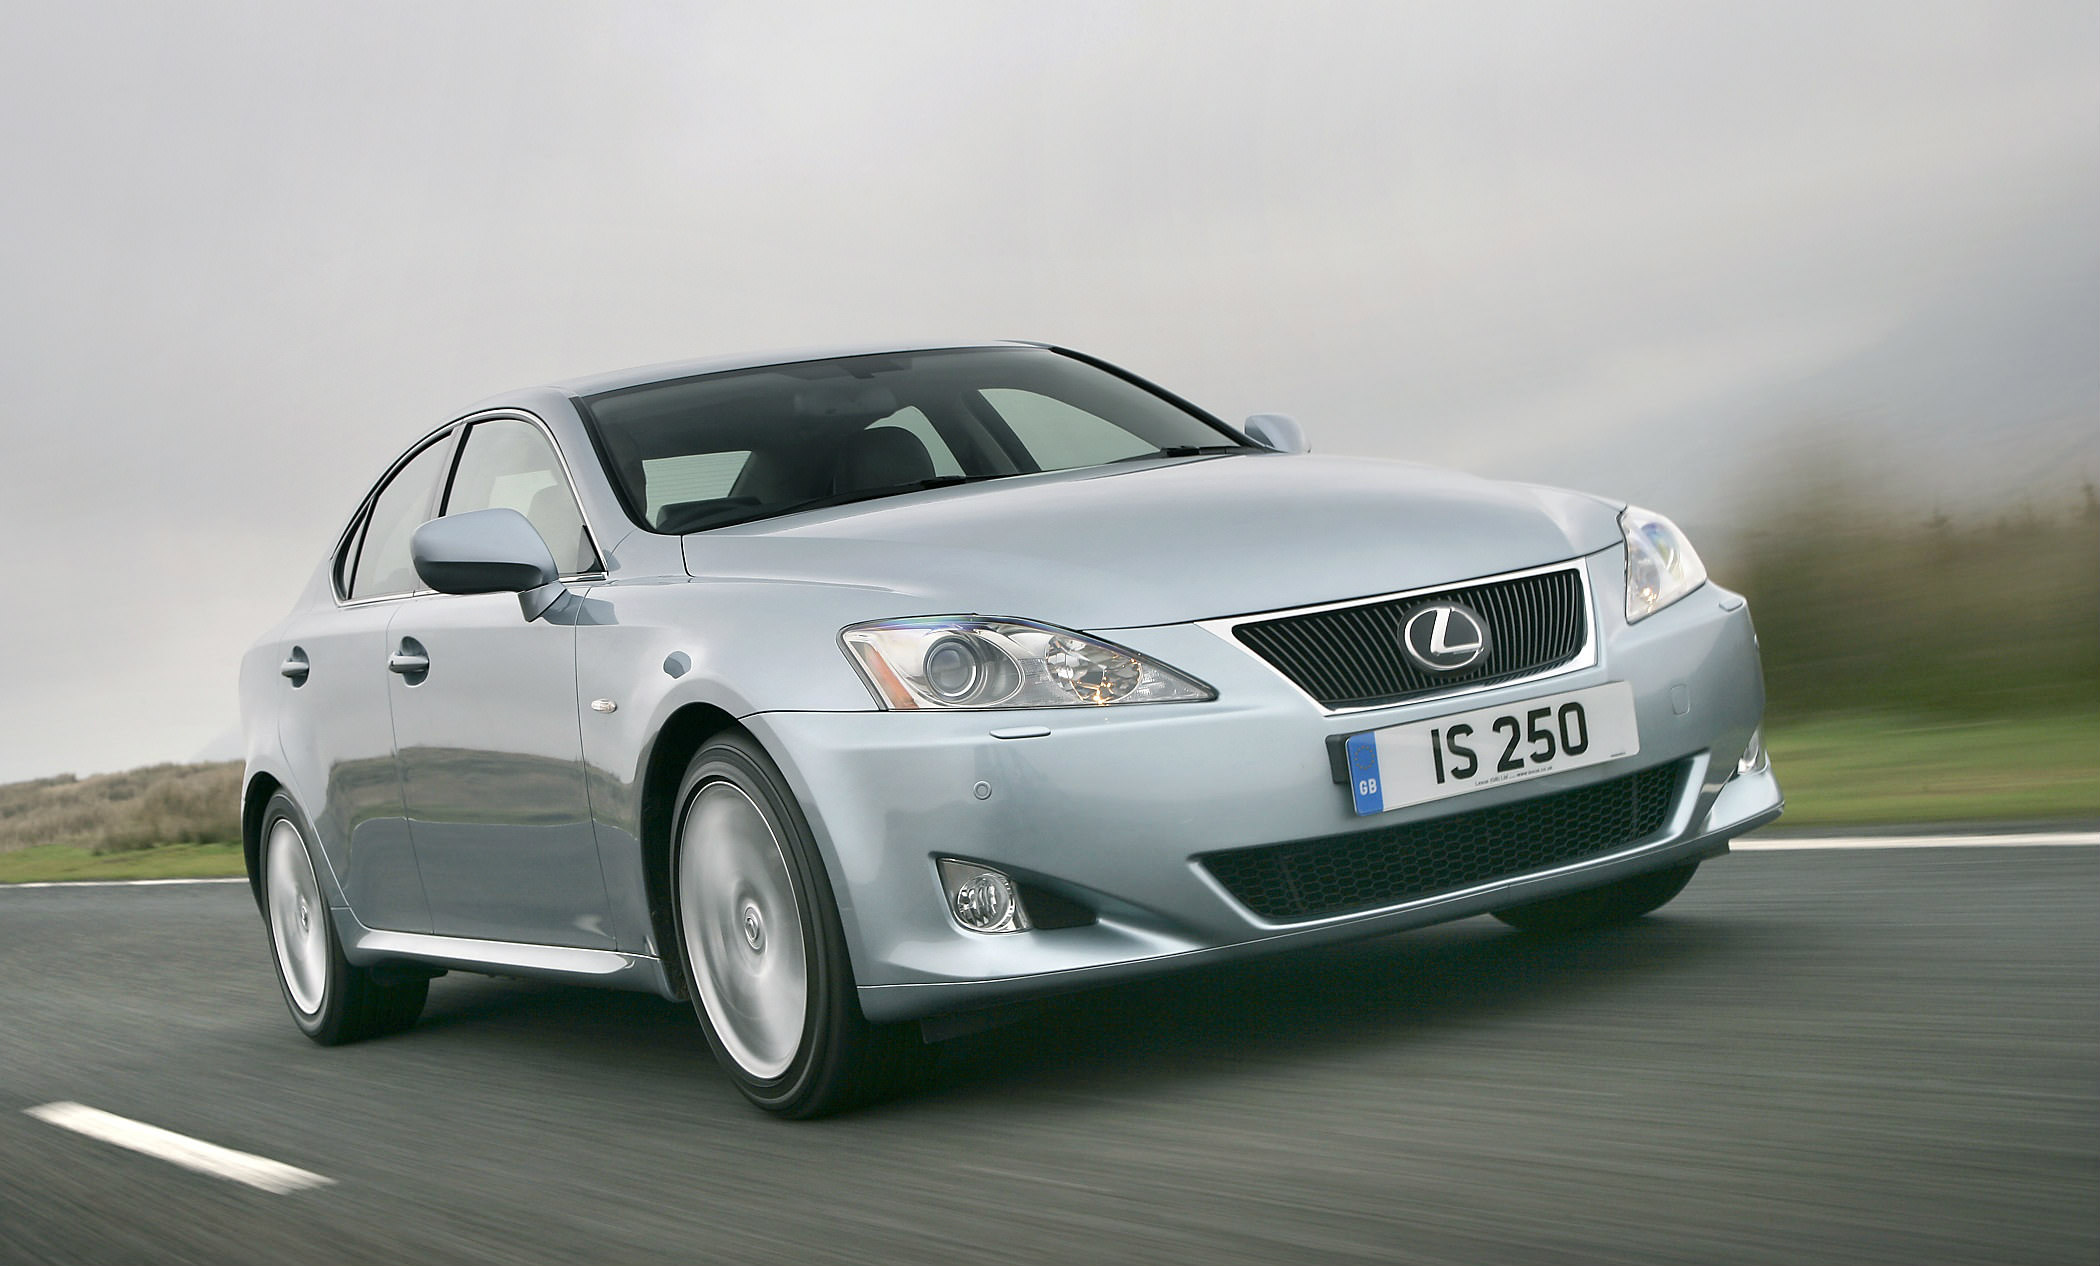 image of a grey lexus is250 car exterior